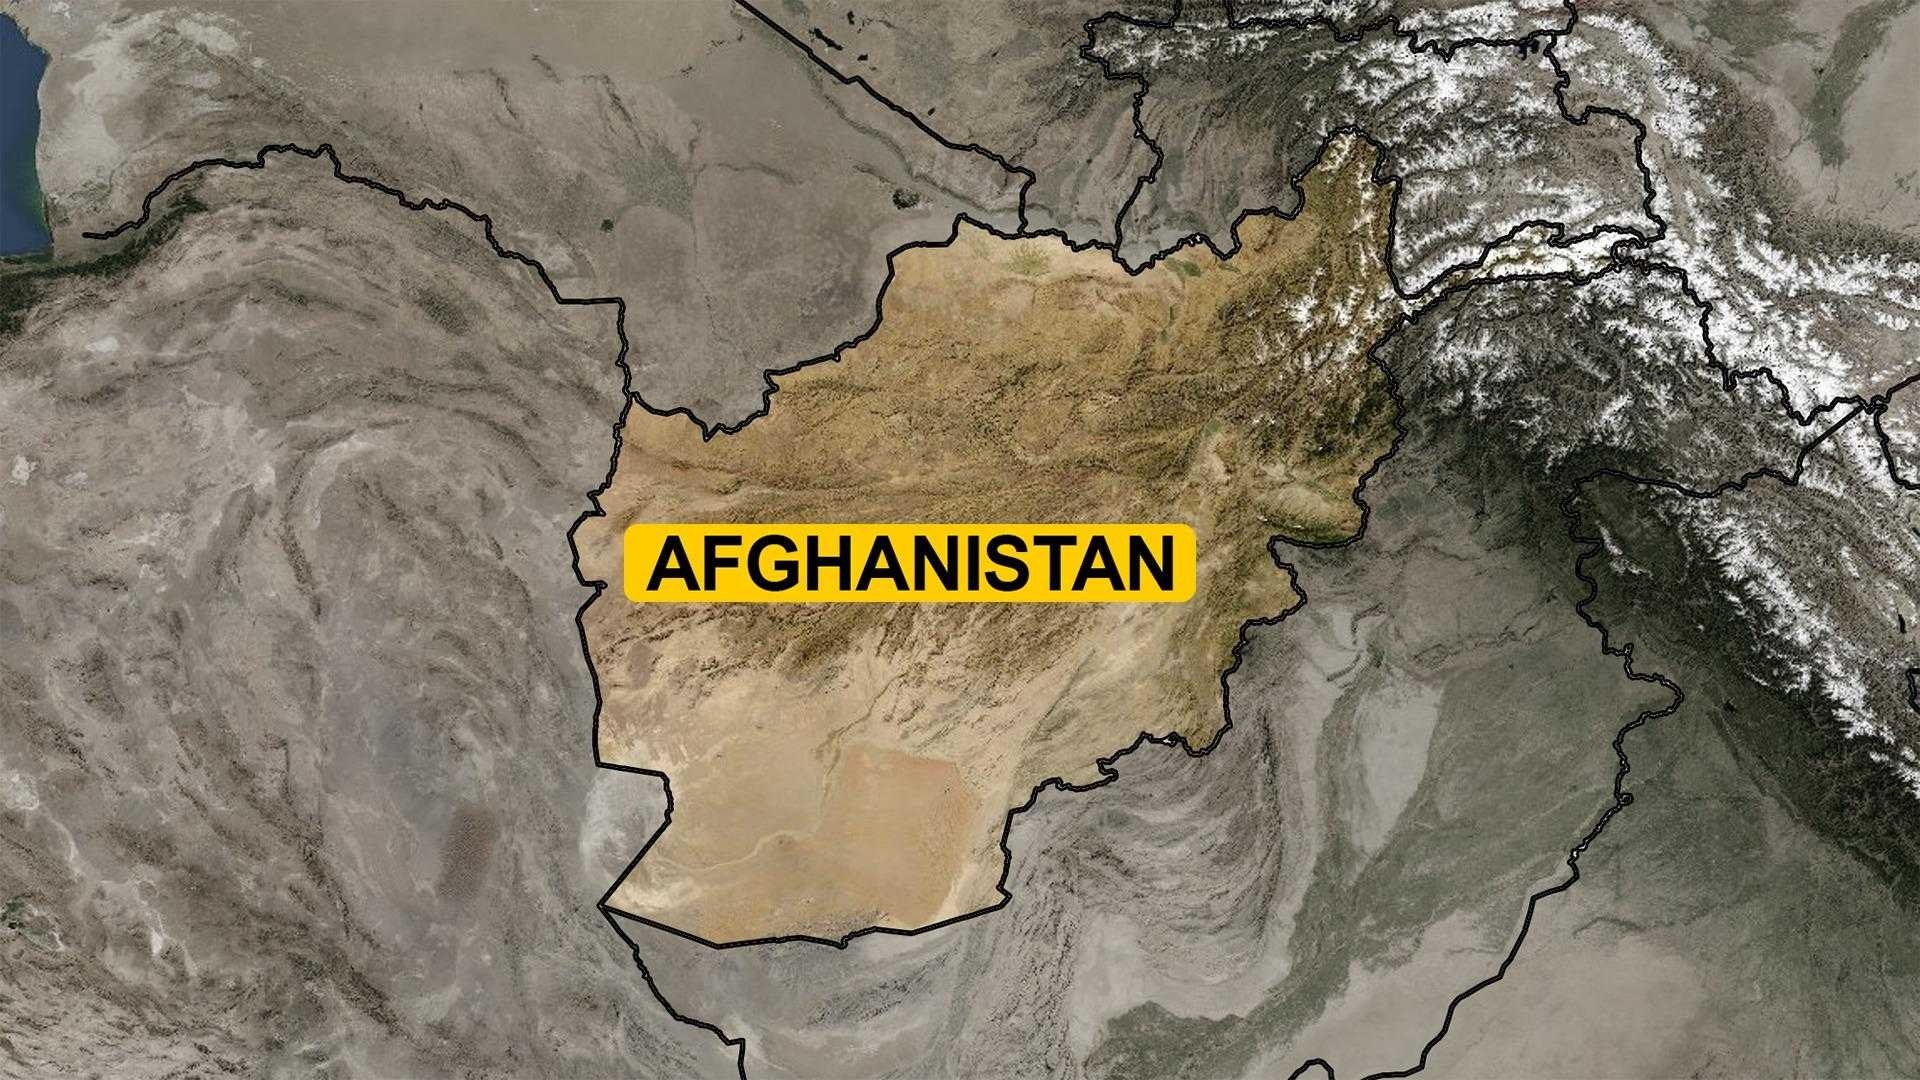 United States soldier killed, 4 wounded in combat in Afghanistan